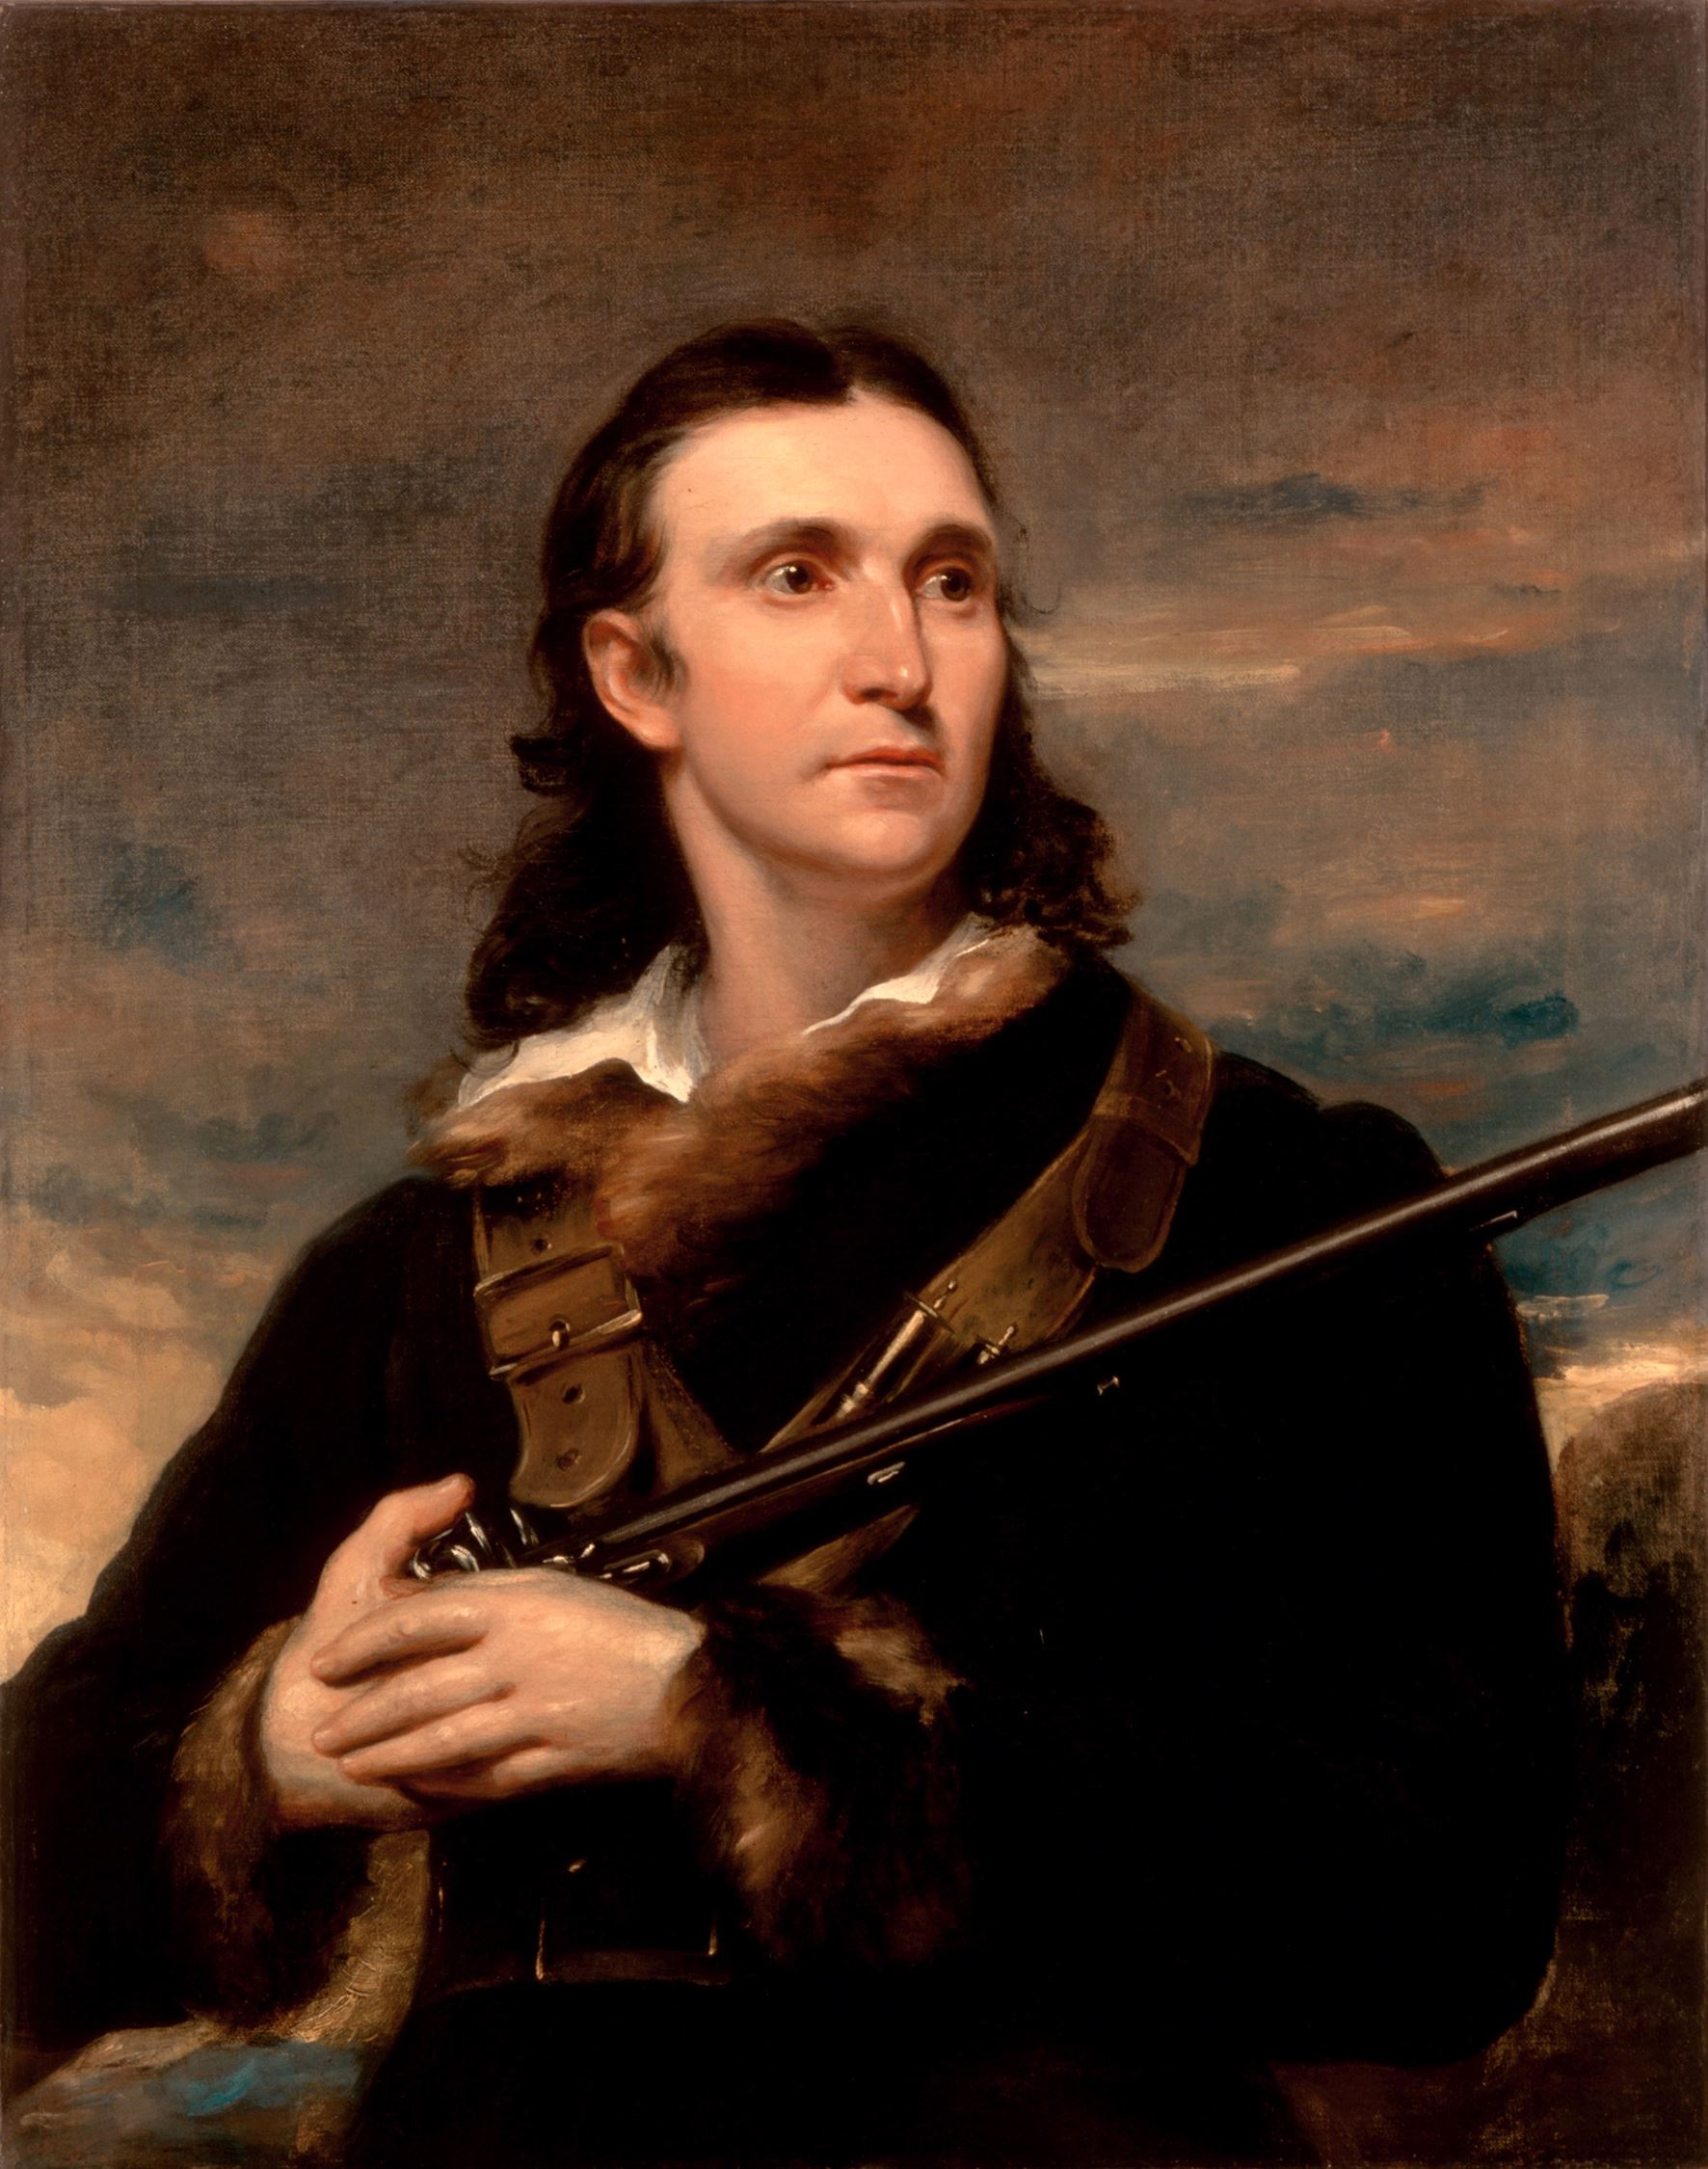 John_James_Audubon_1826b